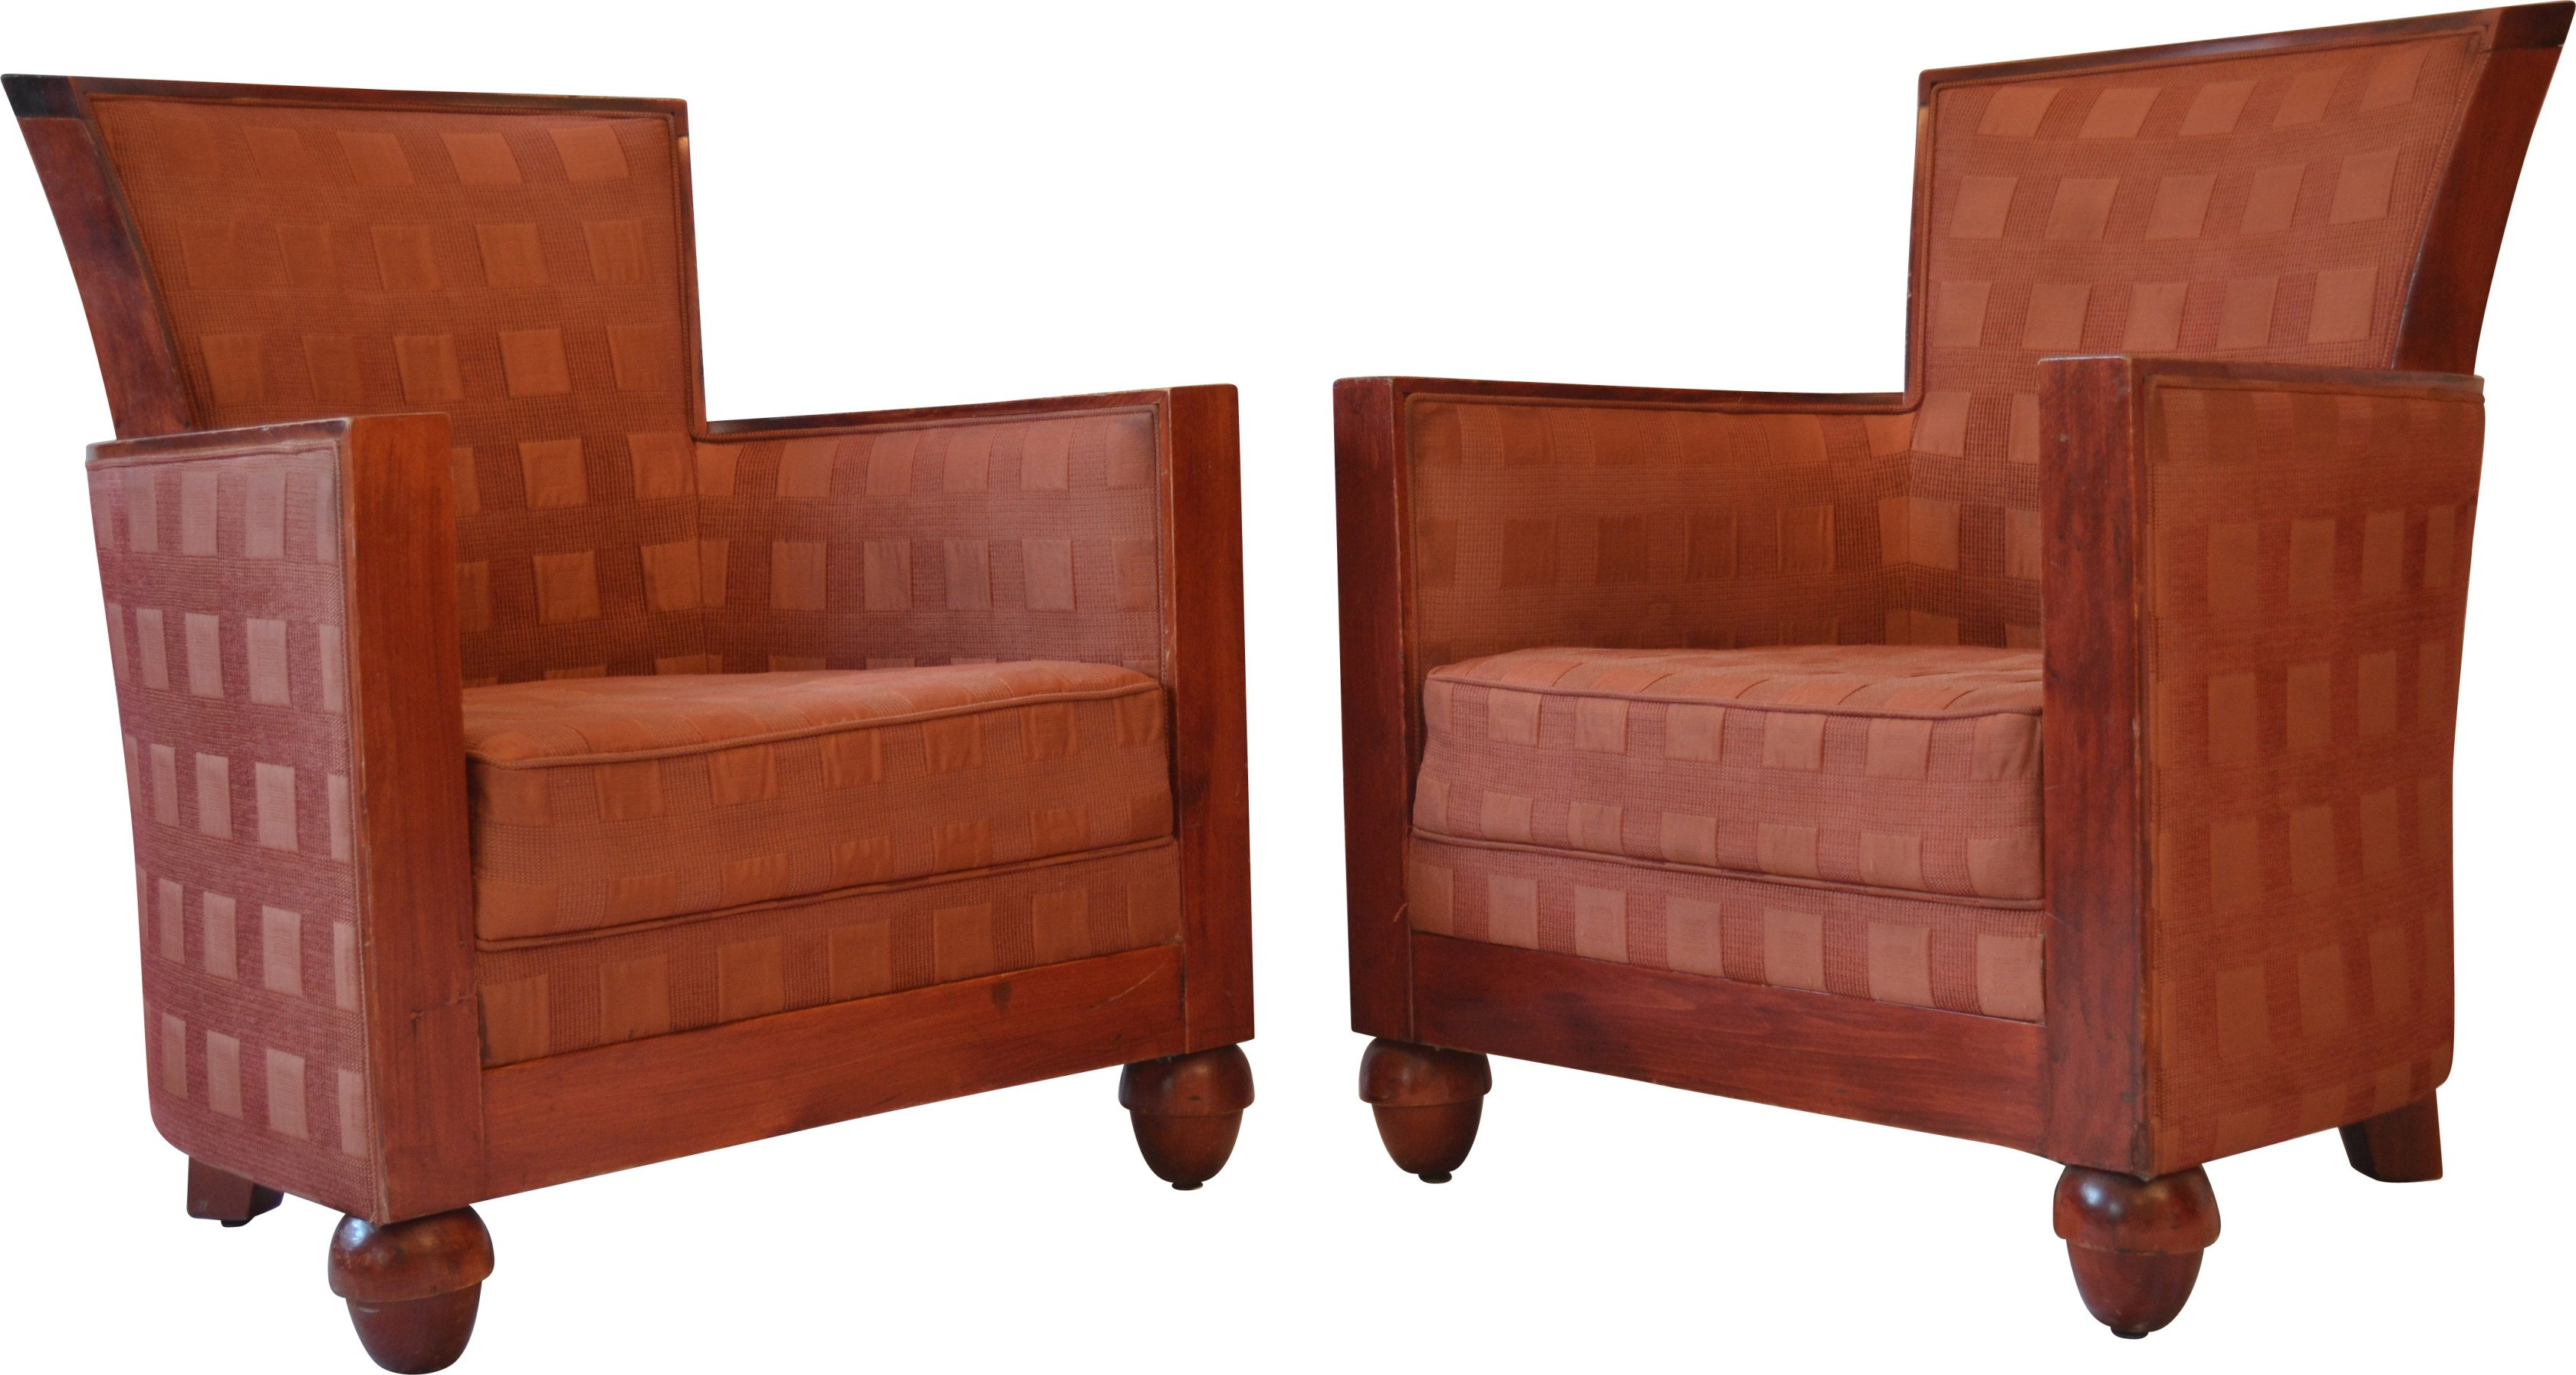 Pair of Armchairs, Rosello of Paris, France, 1960s